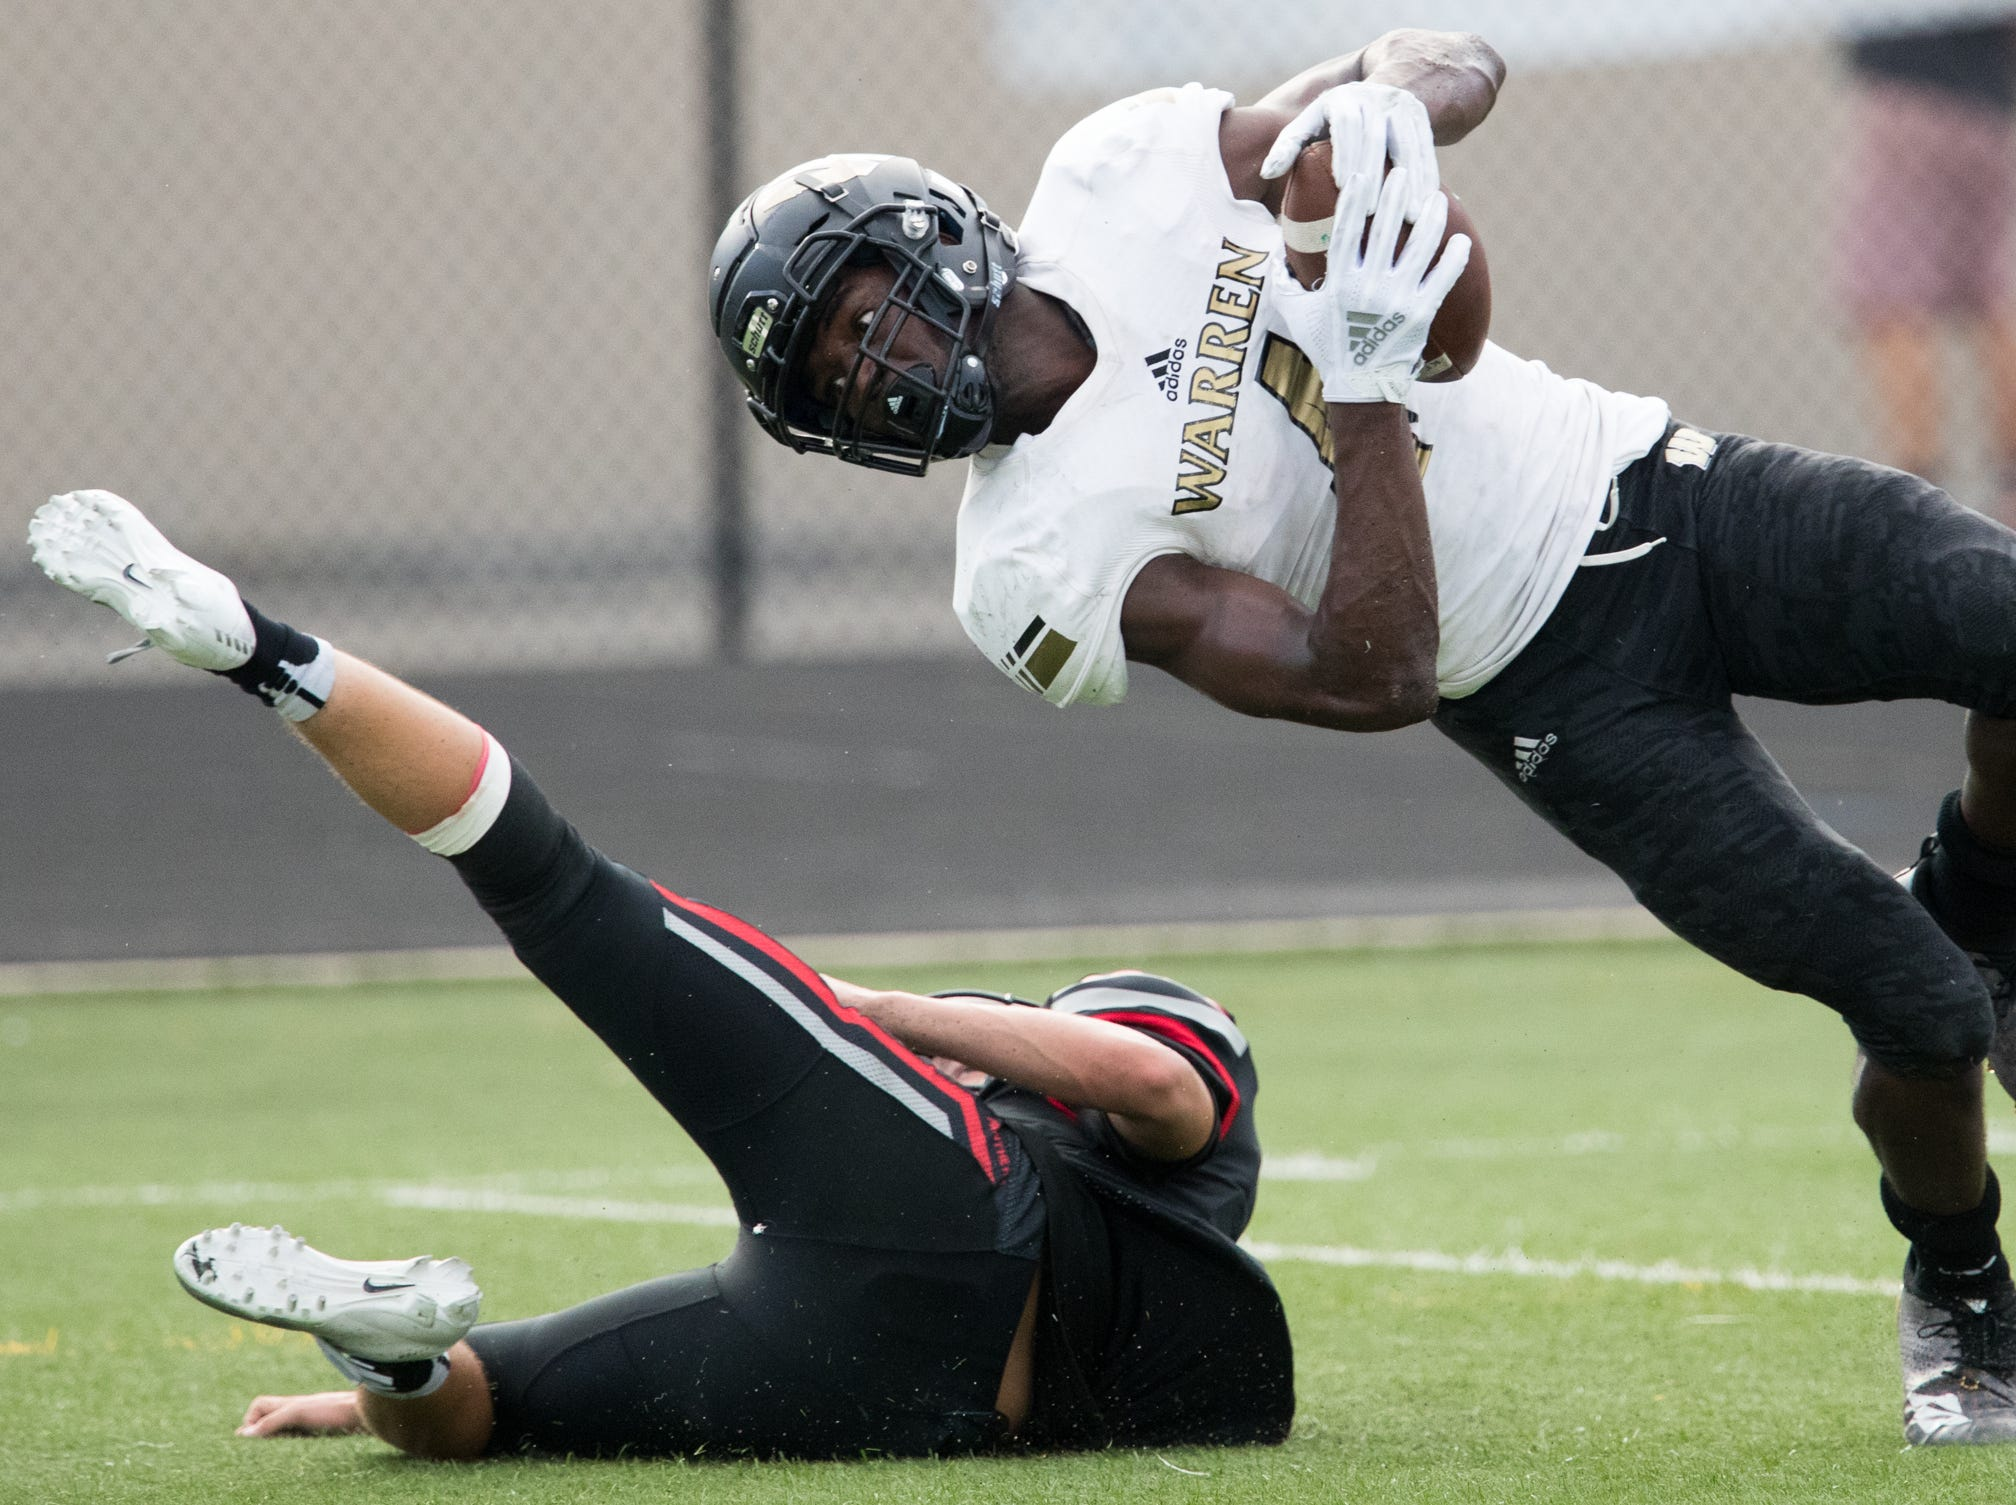 David Bell of Warren Central, looks for a touchdown after this catch that was called back after a penalty during a 58-27 romp for Warren Central High School as they defeat North Central High School at home, Indianapolis, Friday, Aug. 31, 2018.